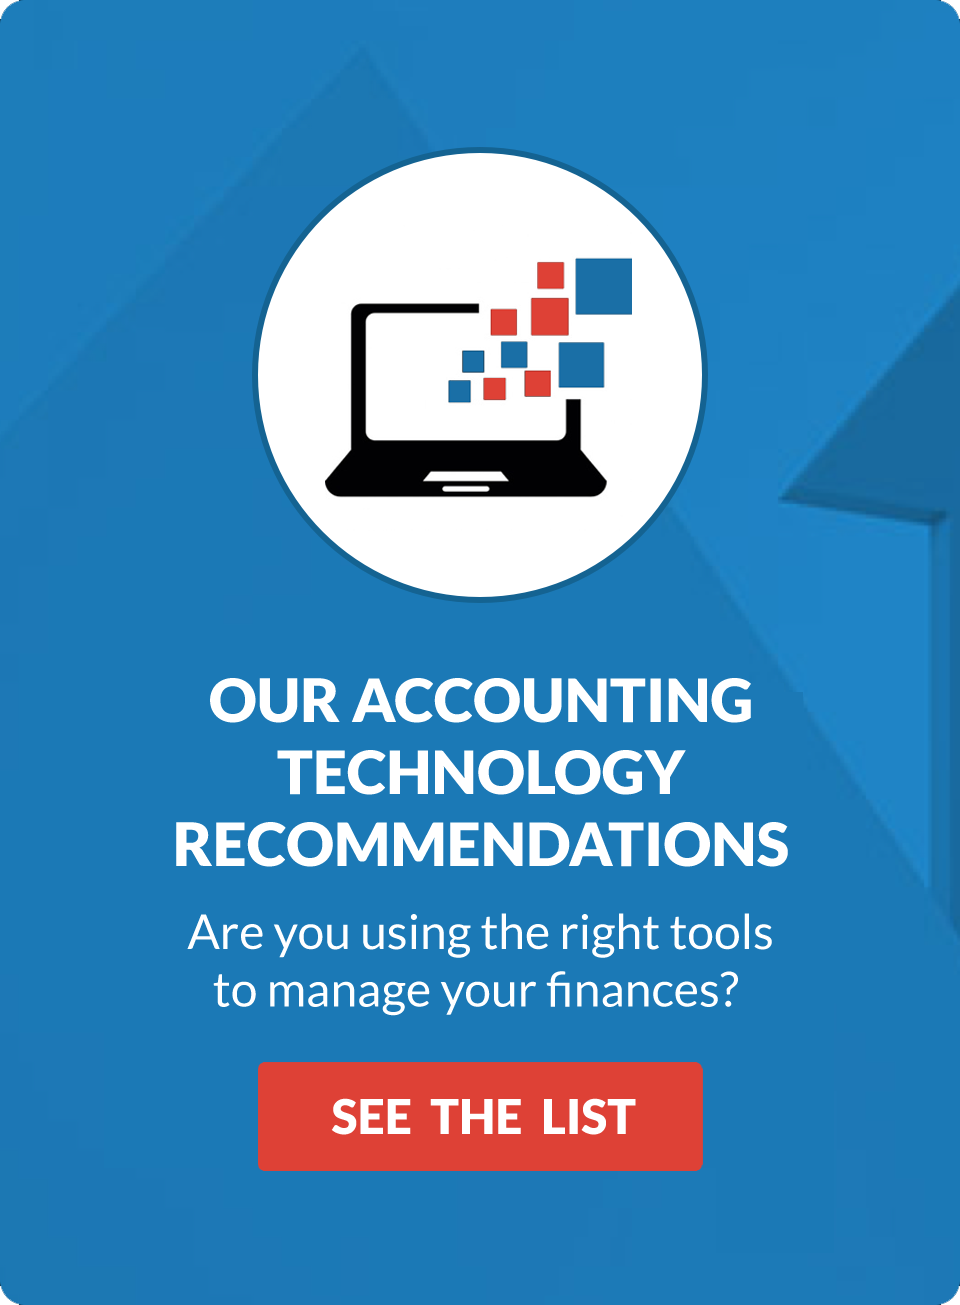 Our Accounting Technology Recommendations